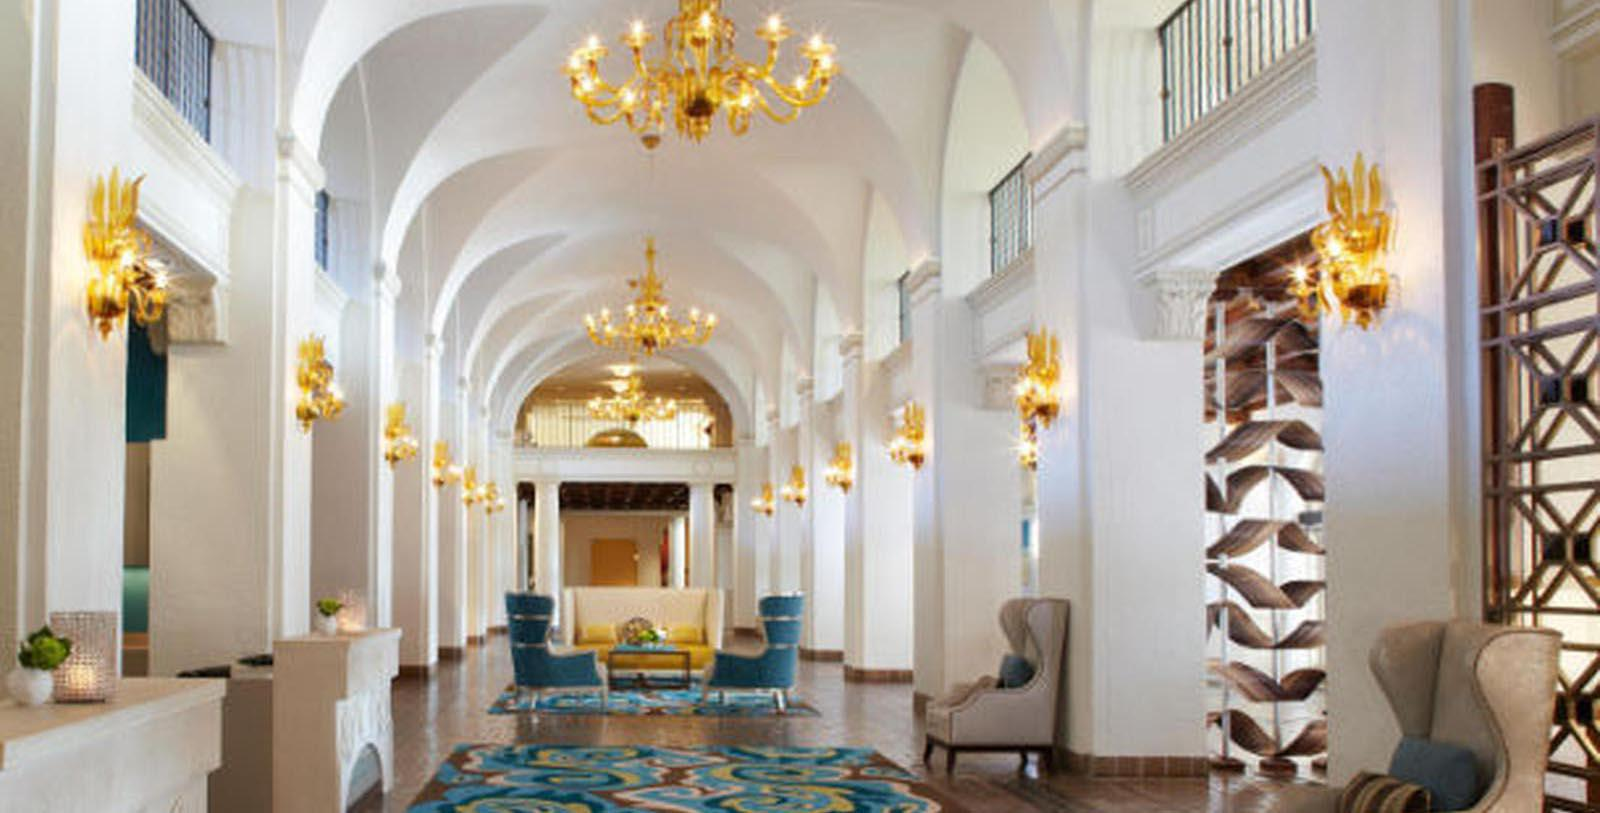 Image of Hotel Lobby at The Vinoy Renaissance St. Petersburg Resort & Golf Club, 1925, Member of Historic Hotels of America, in St. Petersburg, Florida, Overview